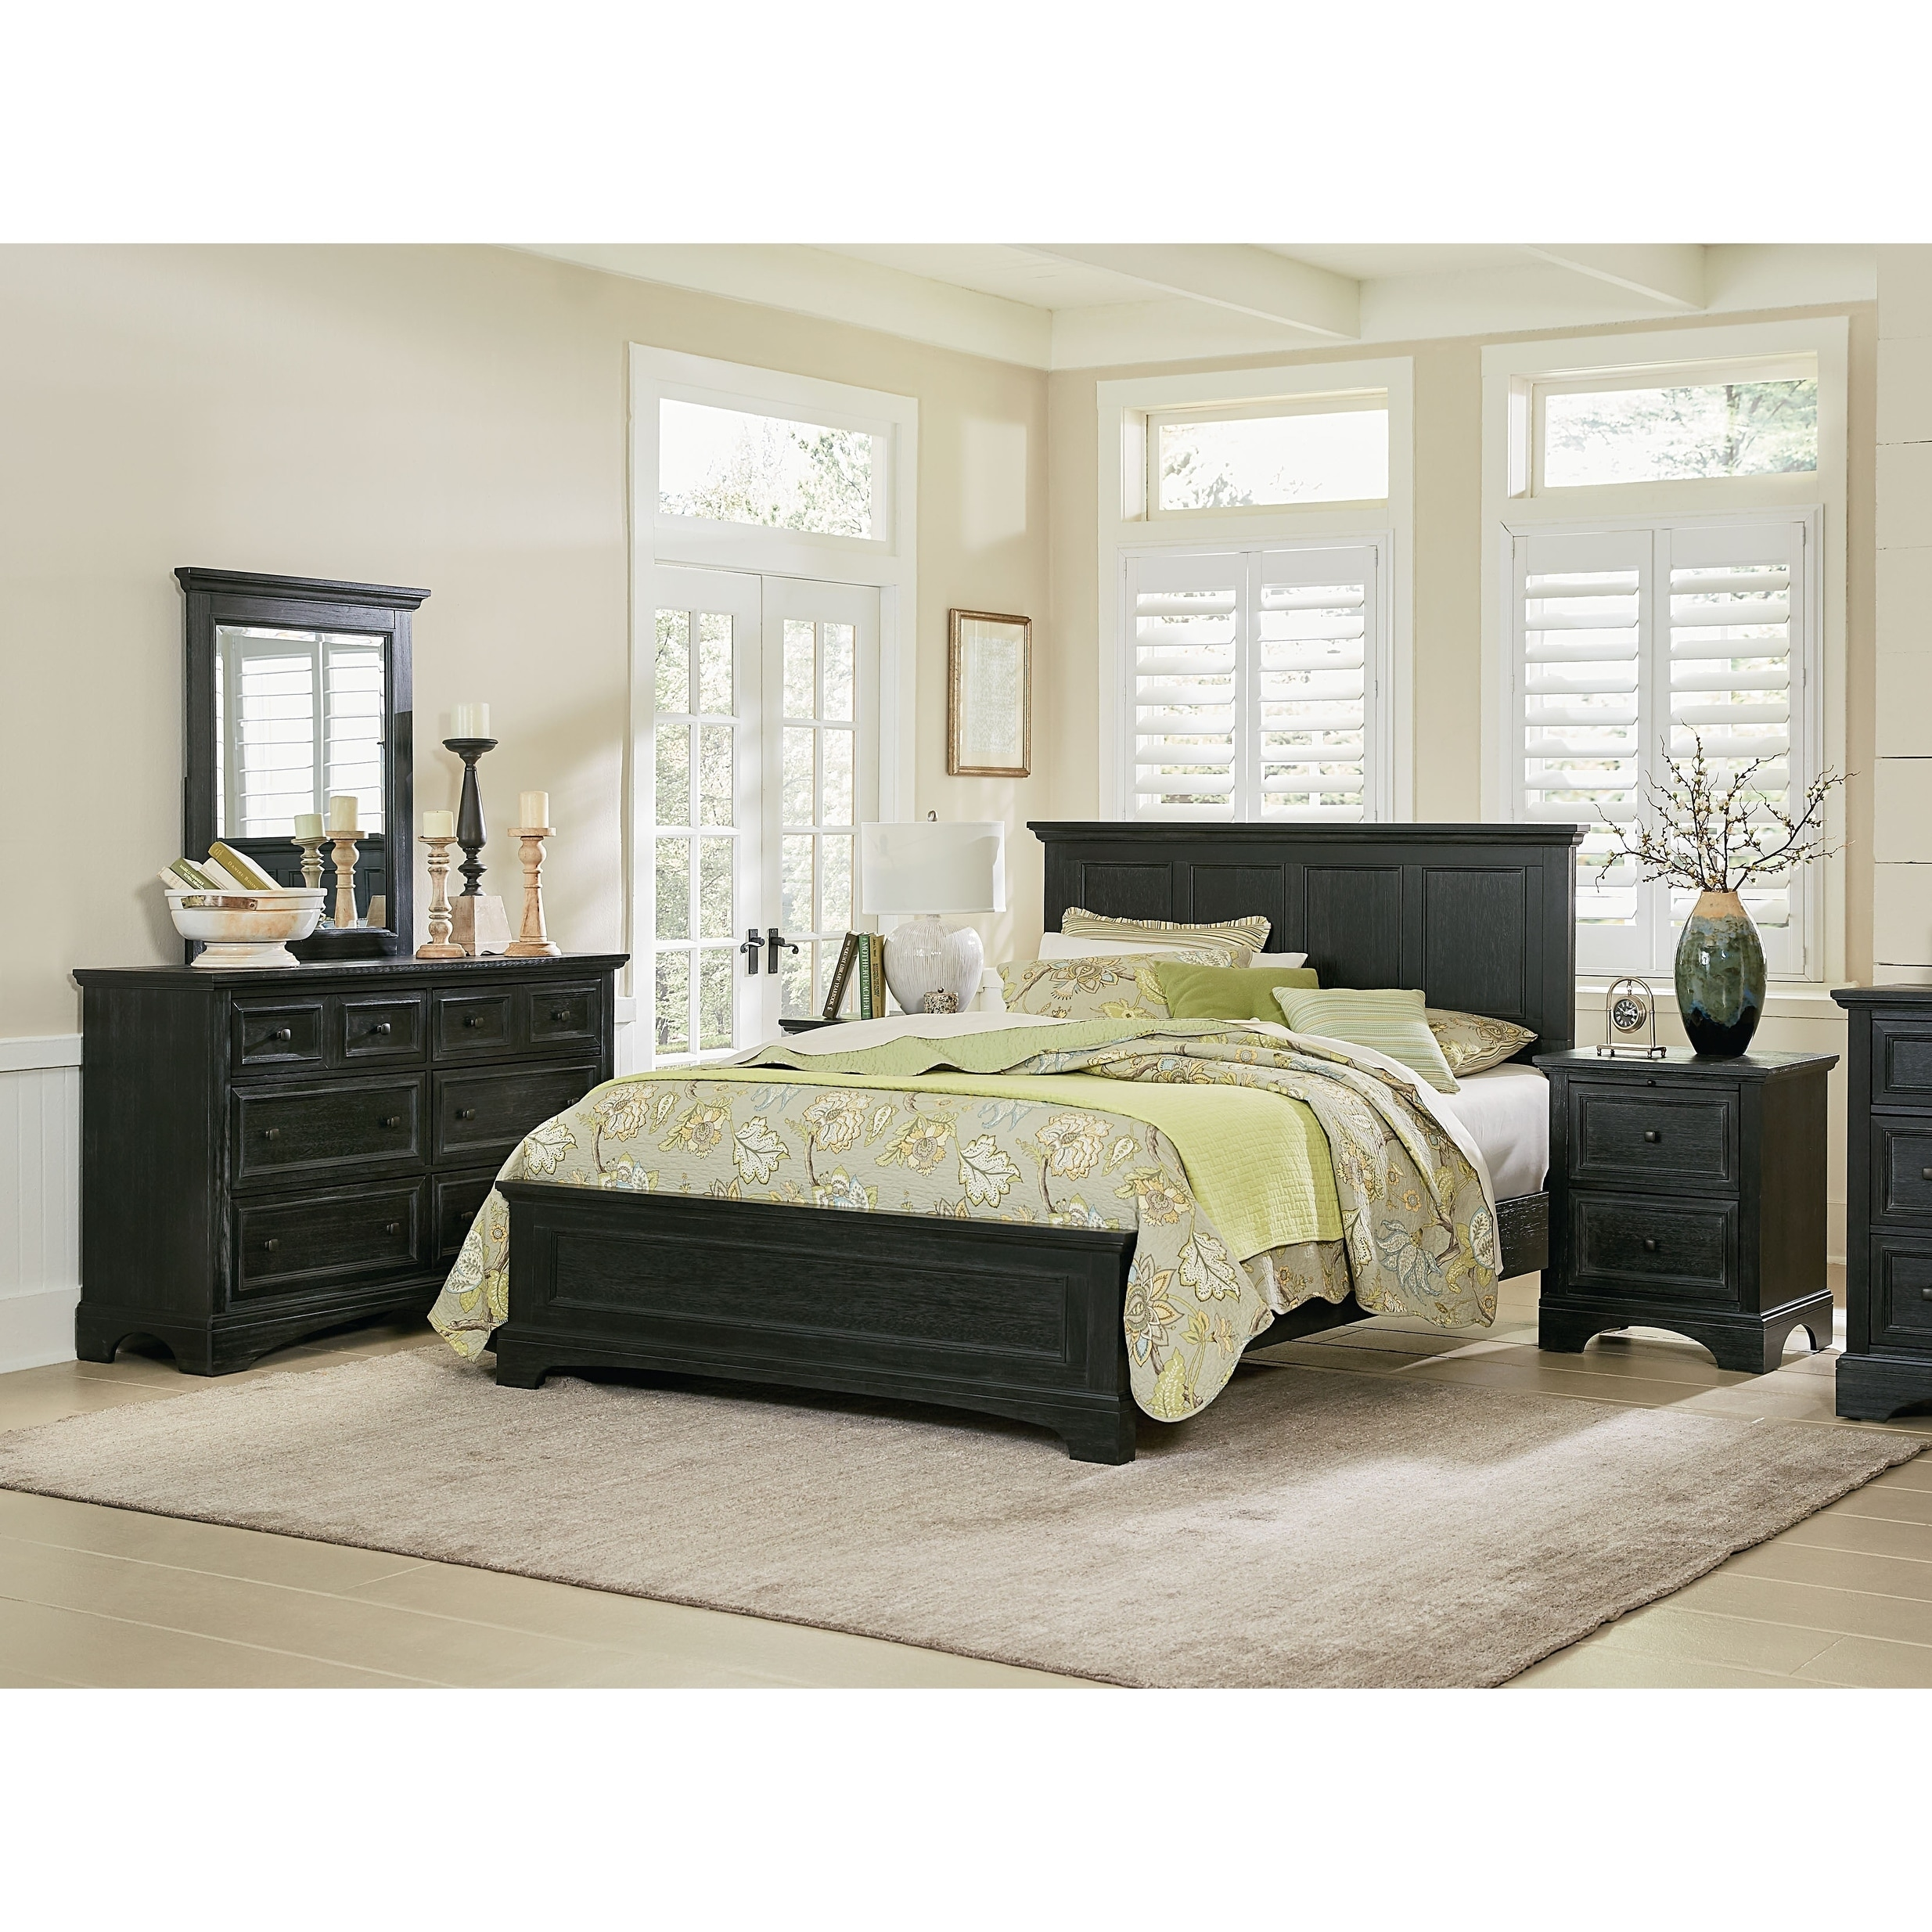 King Bedroom Set With 2 Nightstands